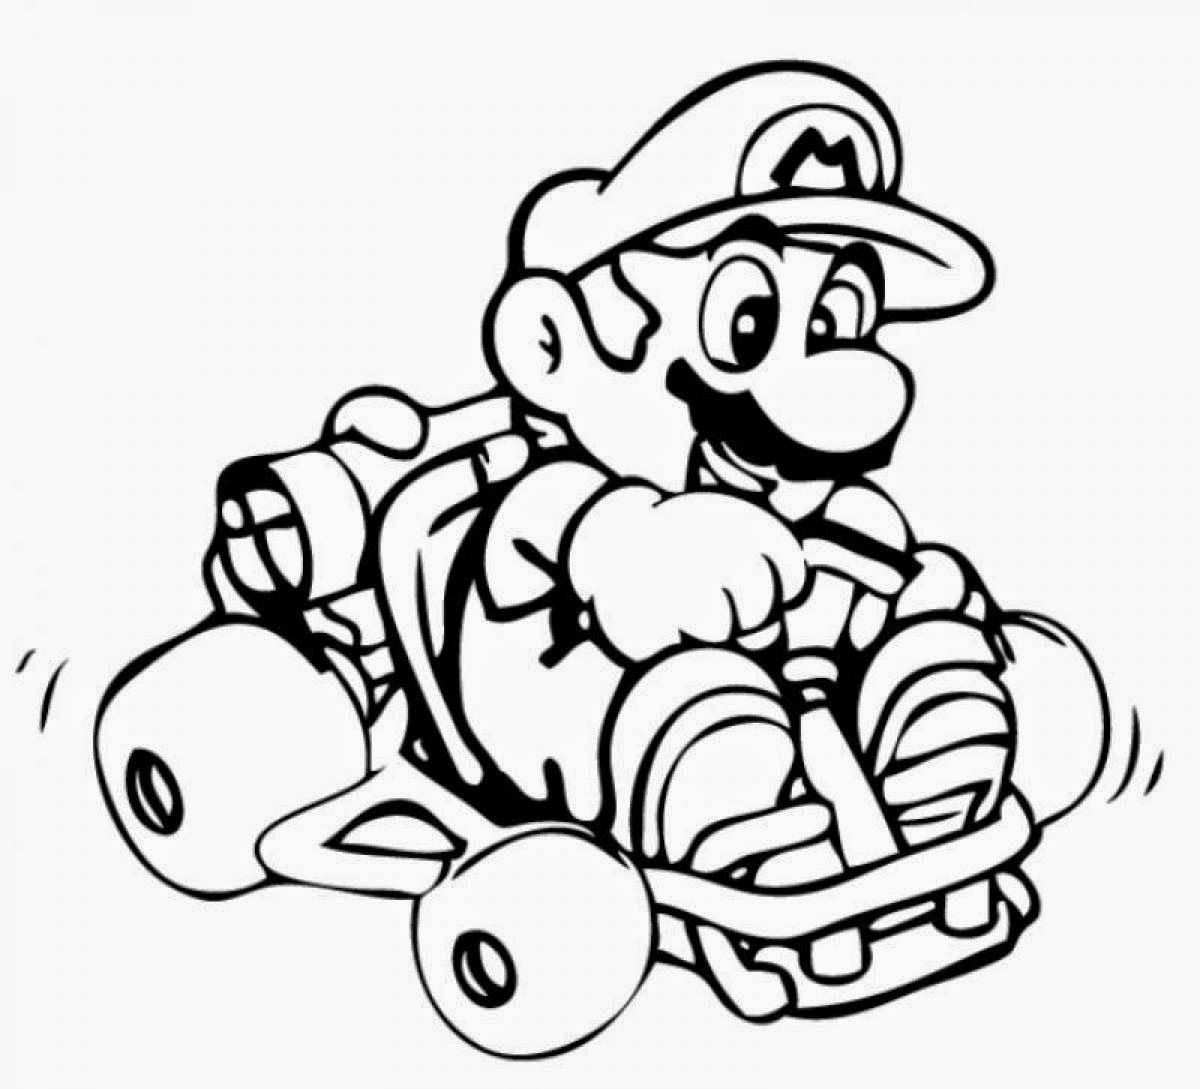 mario characters coloring pages all mario characters coloring pages coloring home coloring mario pages characters